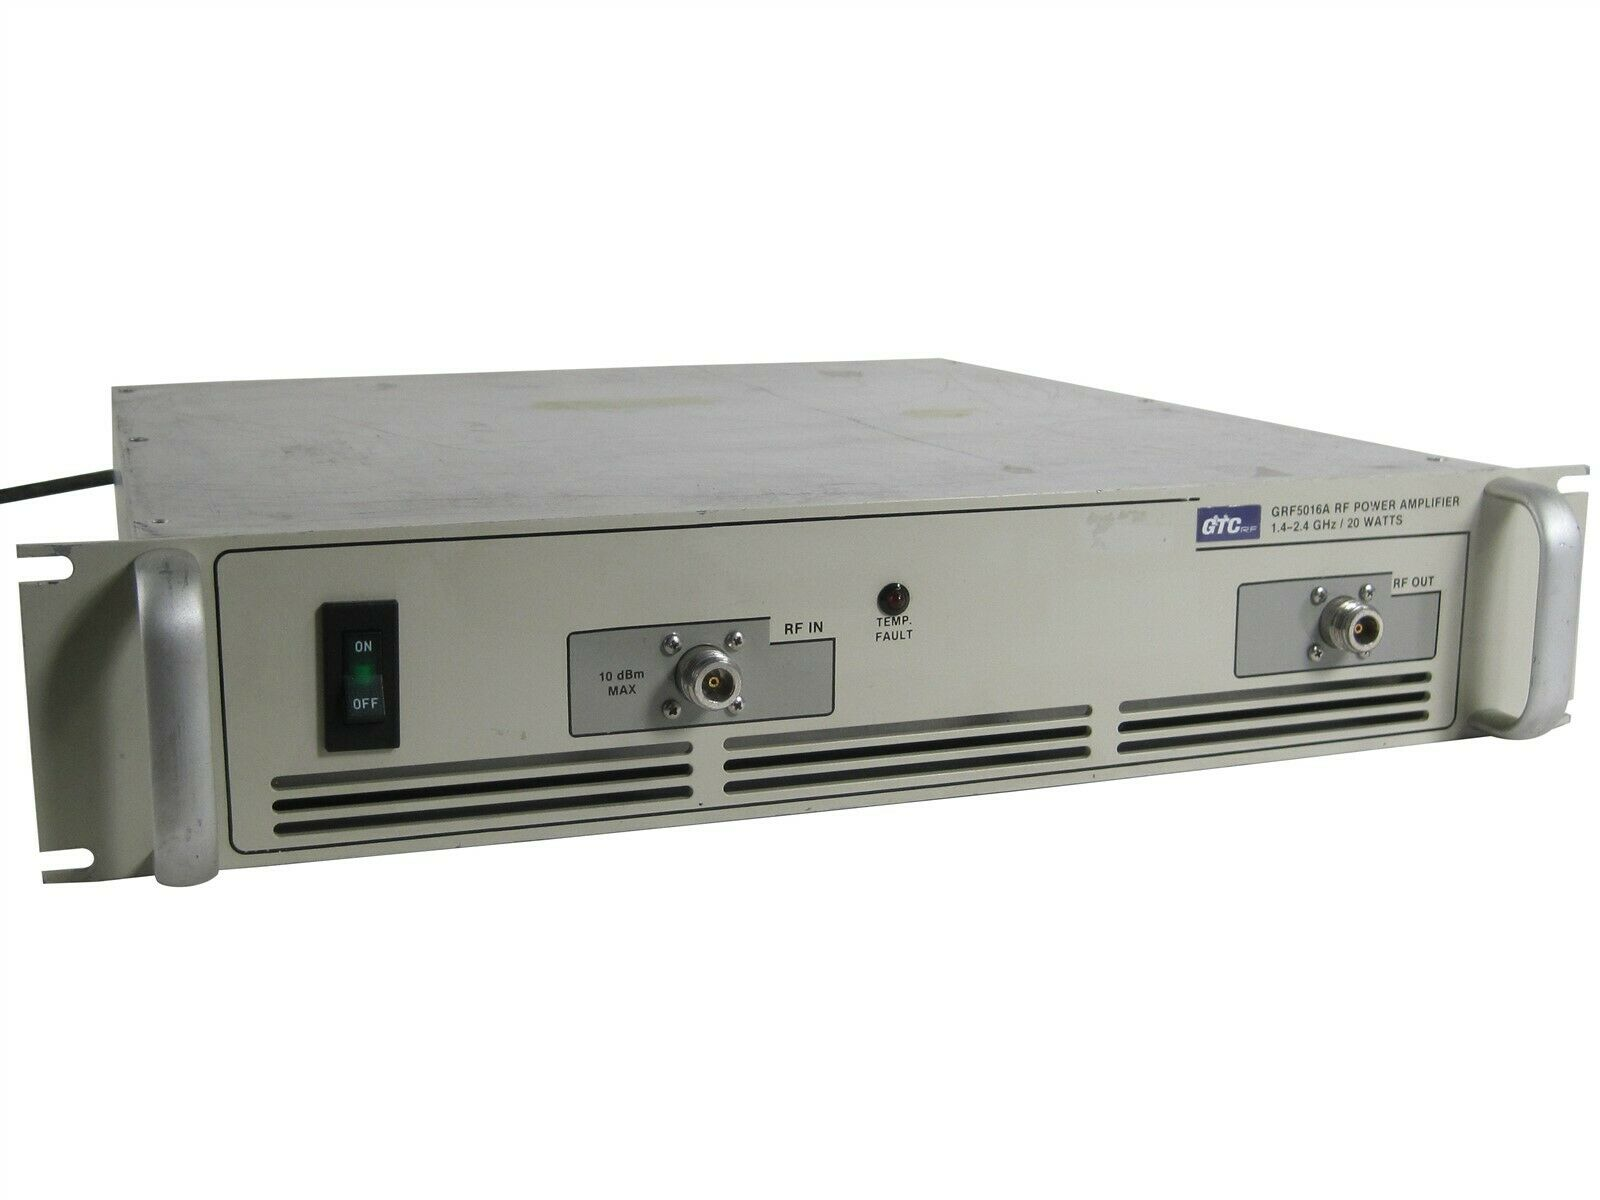 gtc-corporation-grf5016a-linear-rf-power-amplifier-1-4ghz-2-4ghz-20-watts-used-equipment-0.jpg